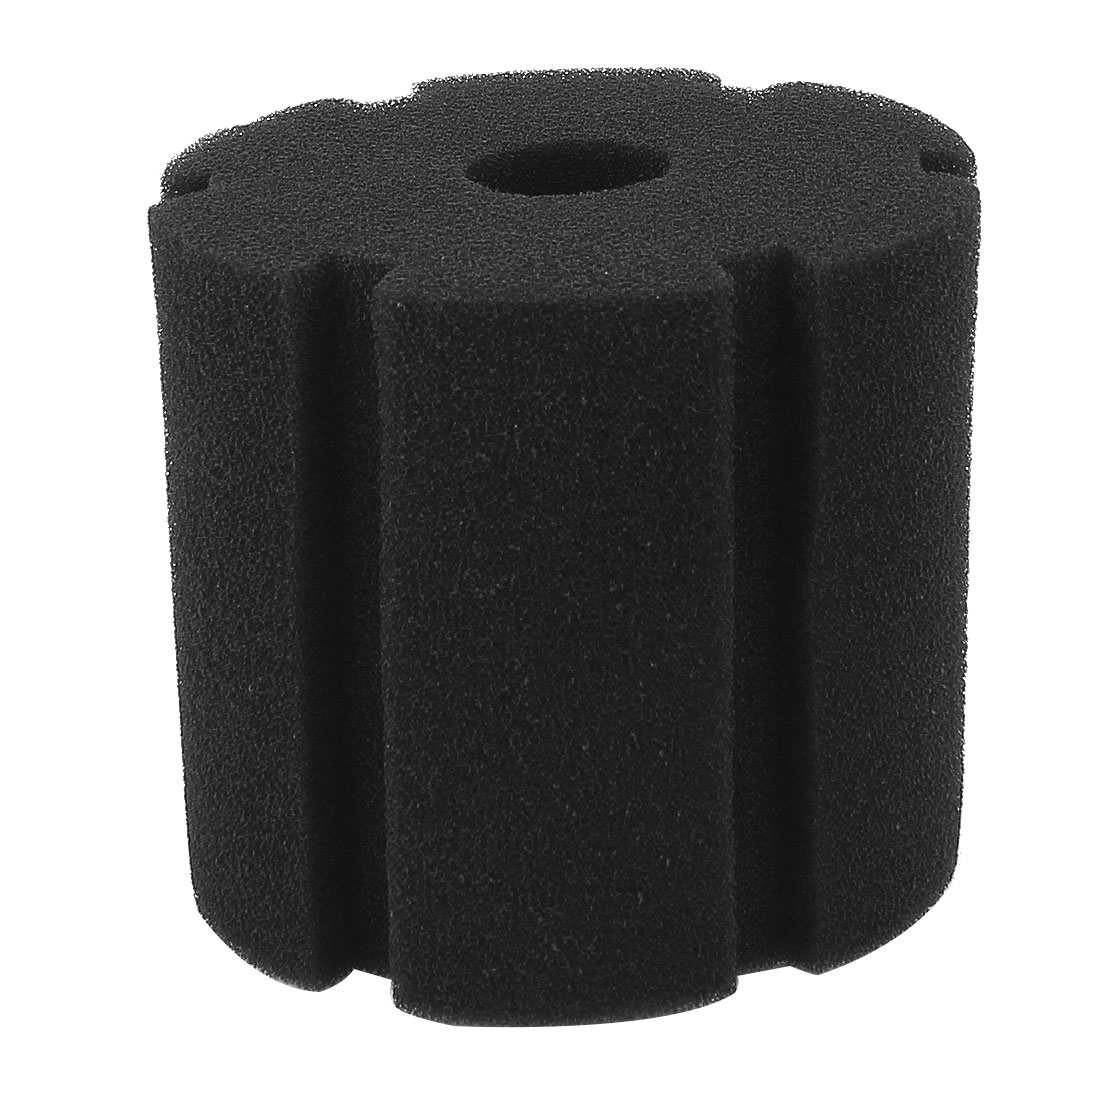 Aquarium Filter Biochemical Sponge Foam Replacement Black